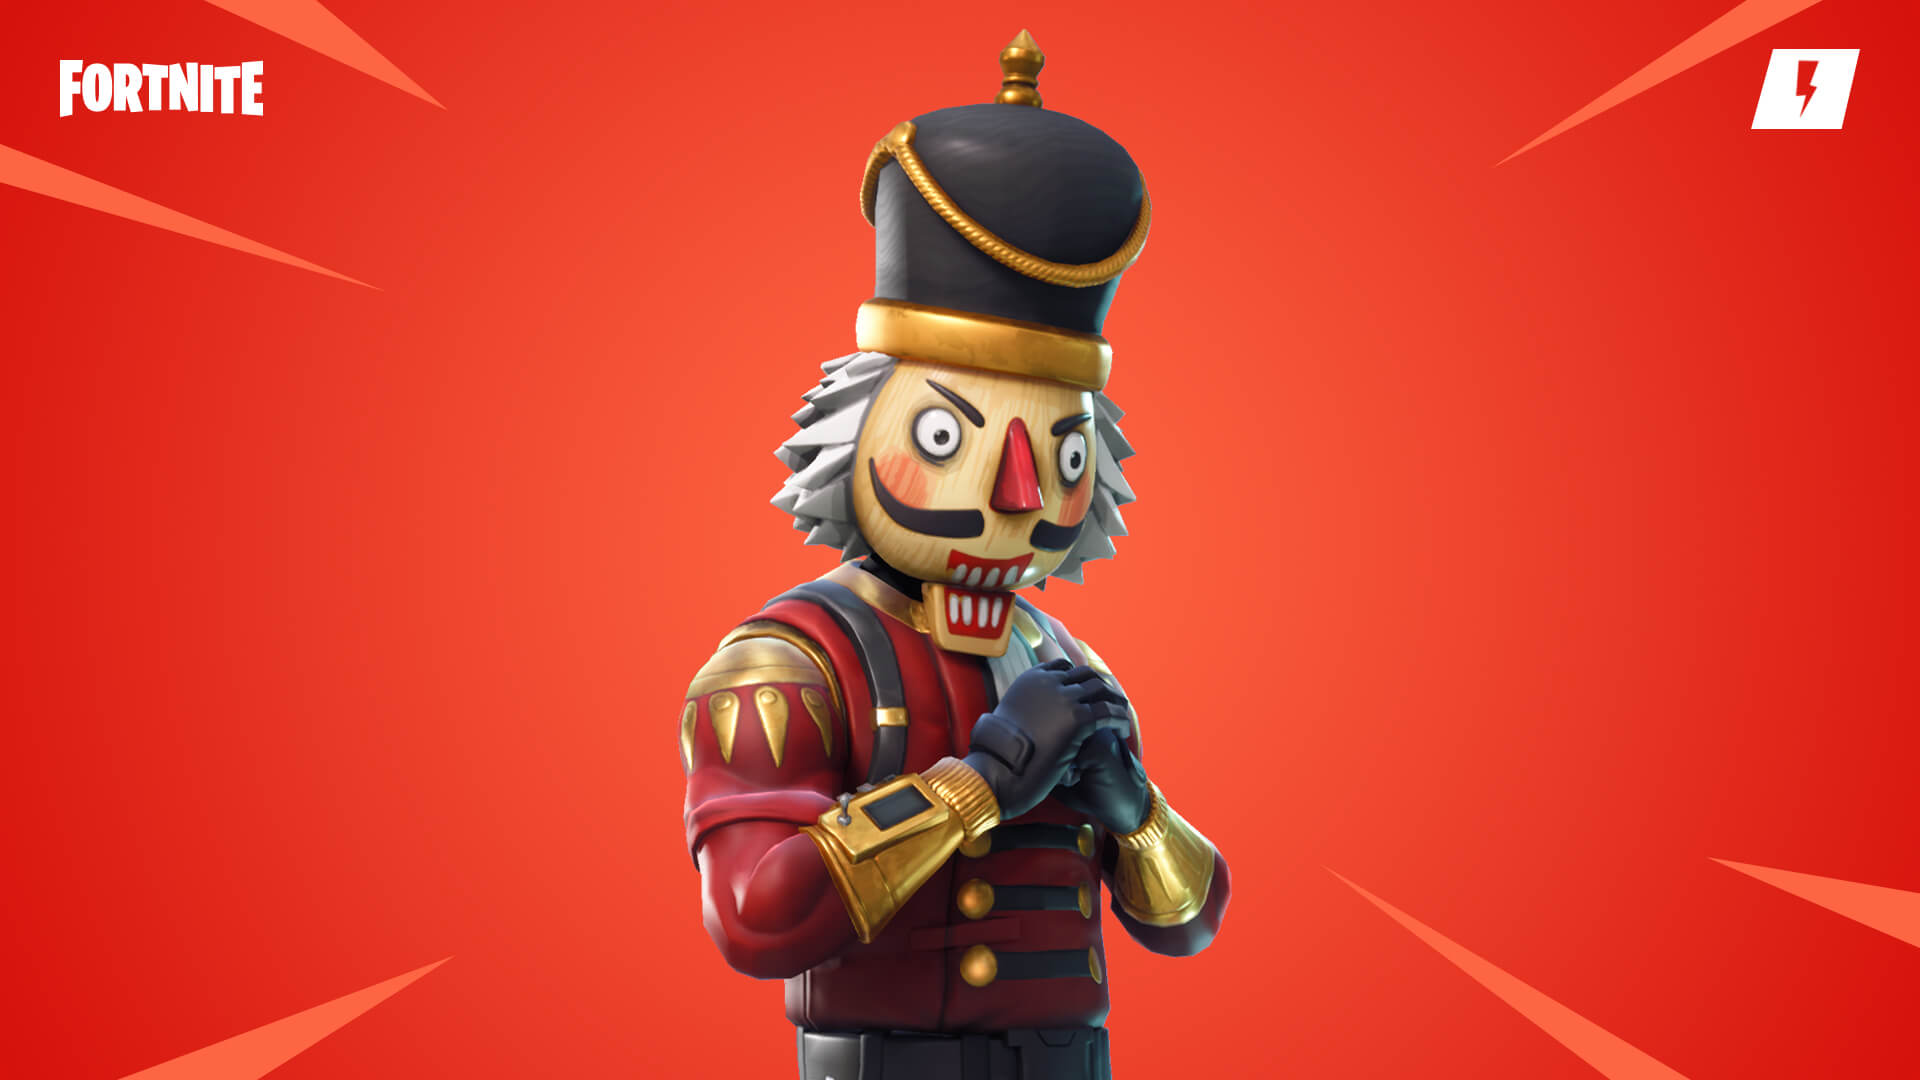 Fortnite Save The World Crackshot Soldier